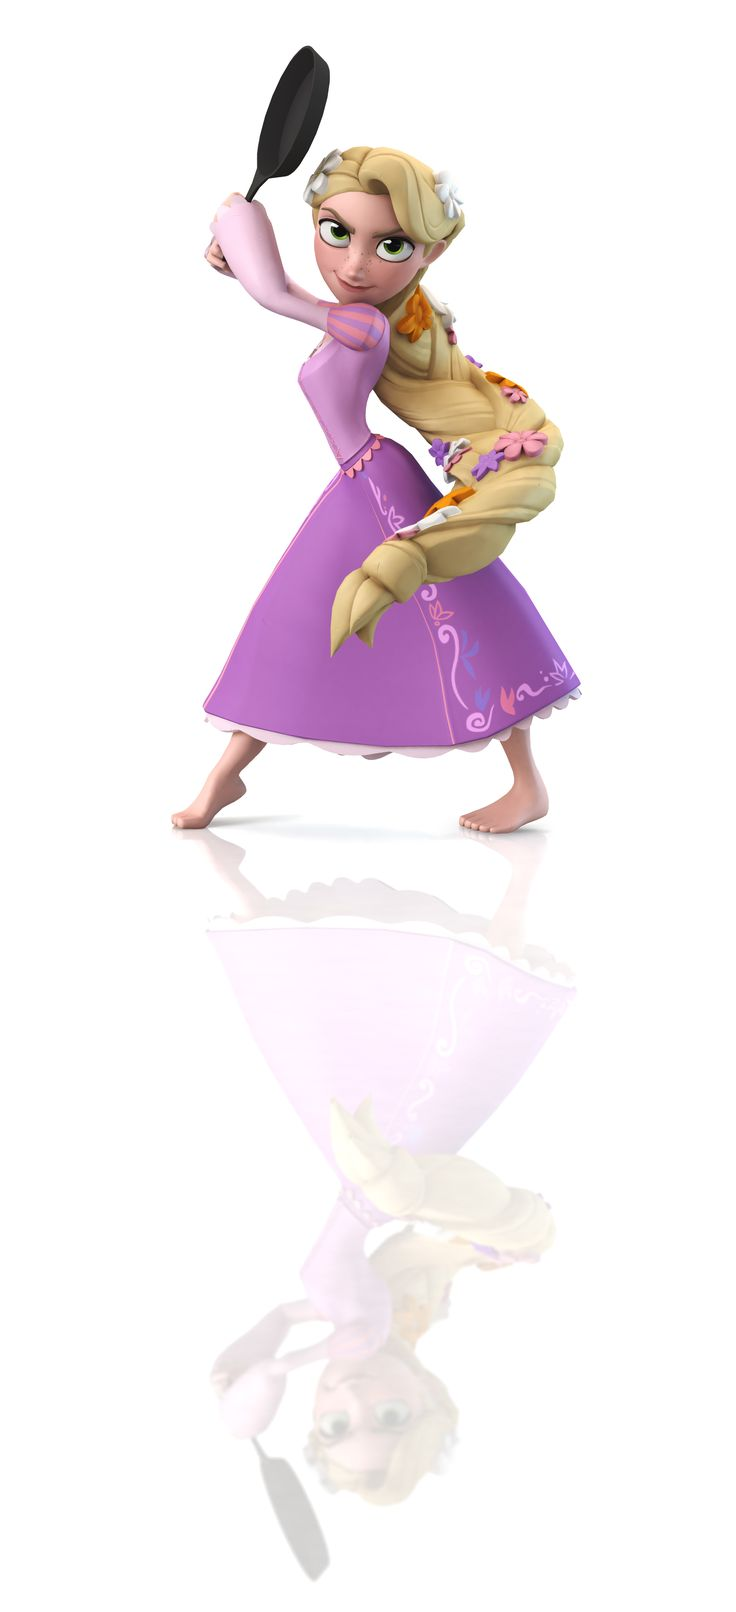 Rapunzel is definitly my favorite infinity character! It's ...